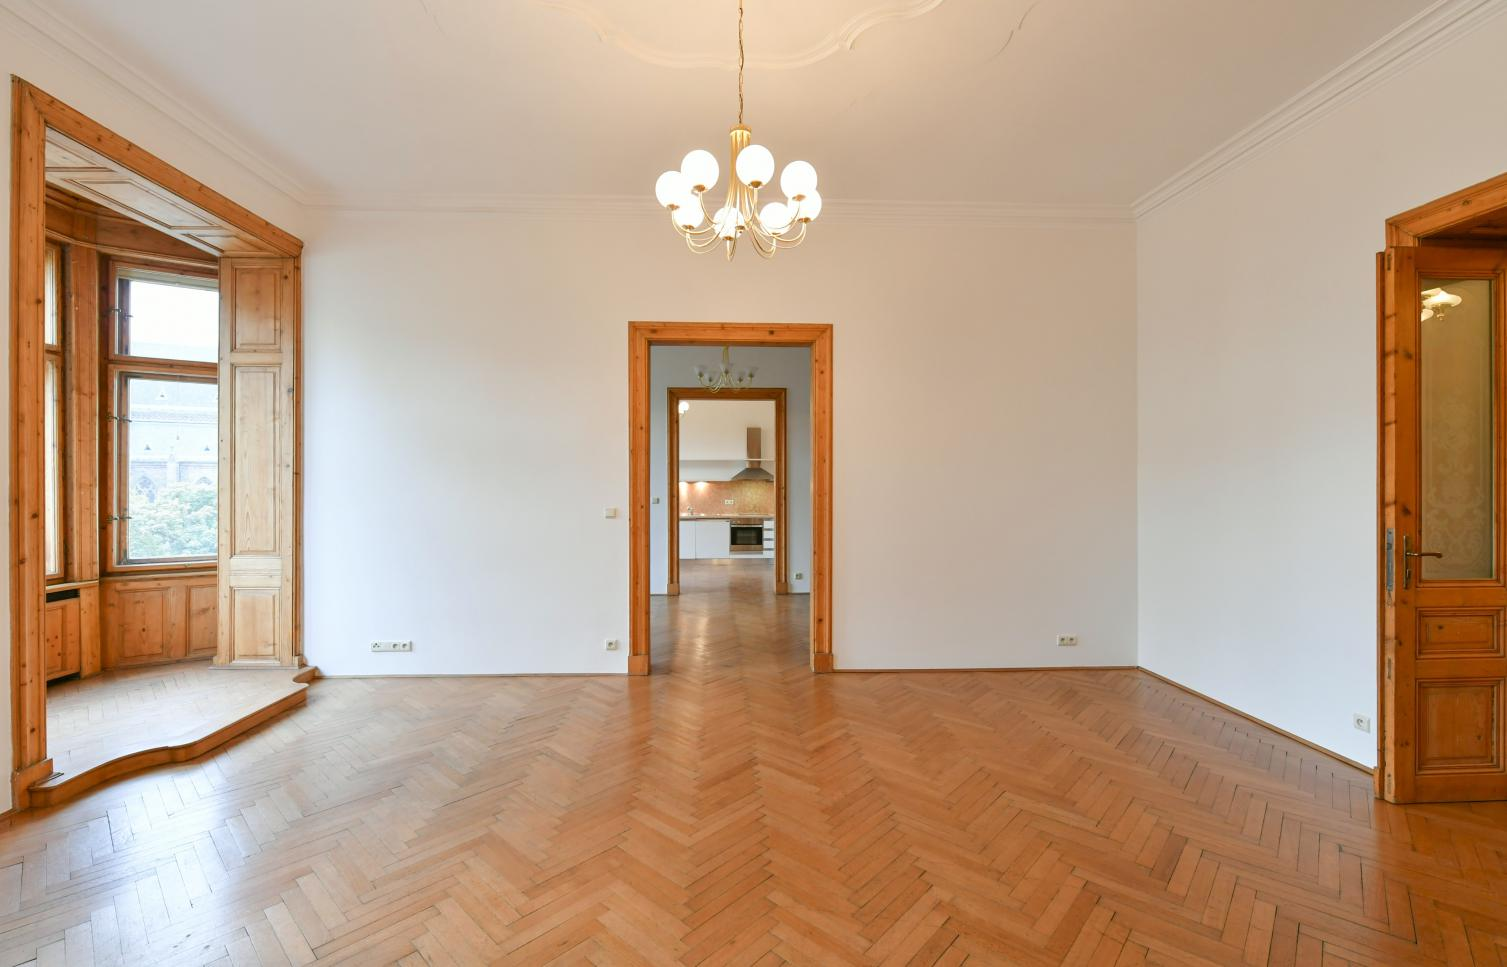 APARTMENT FOR RENT, Str. Ibsenova, Prague 2 - Vinohrady